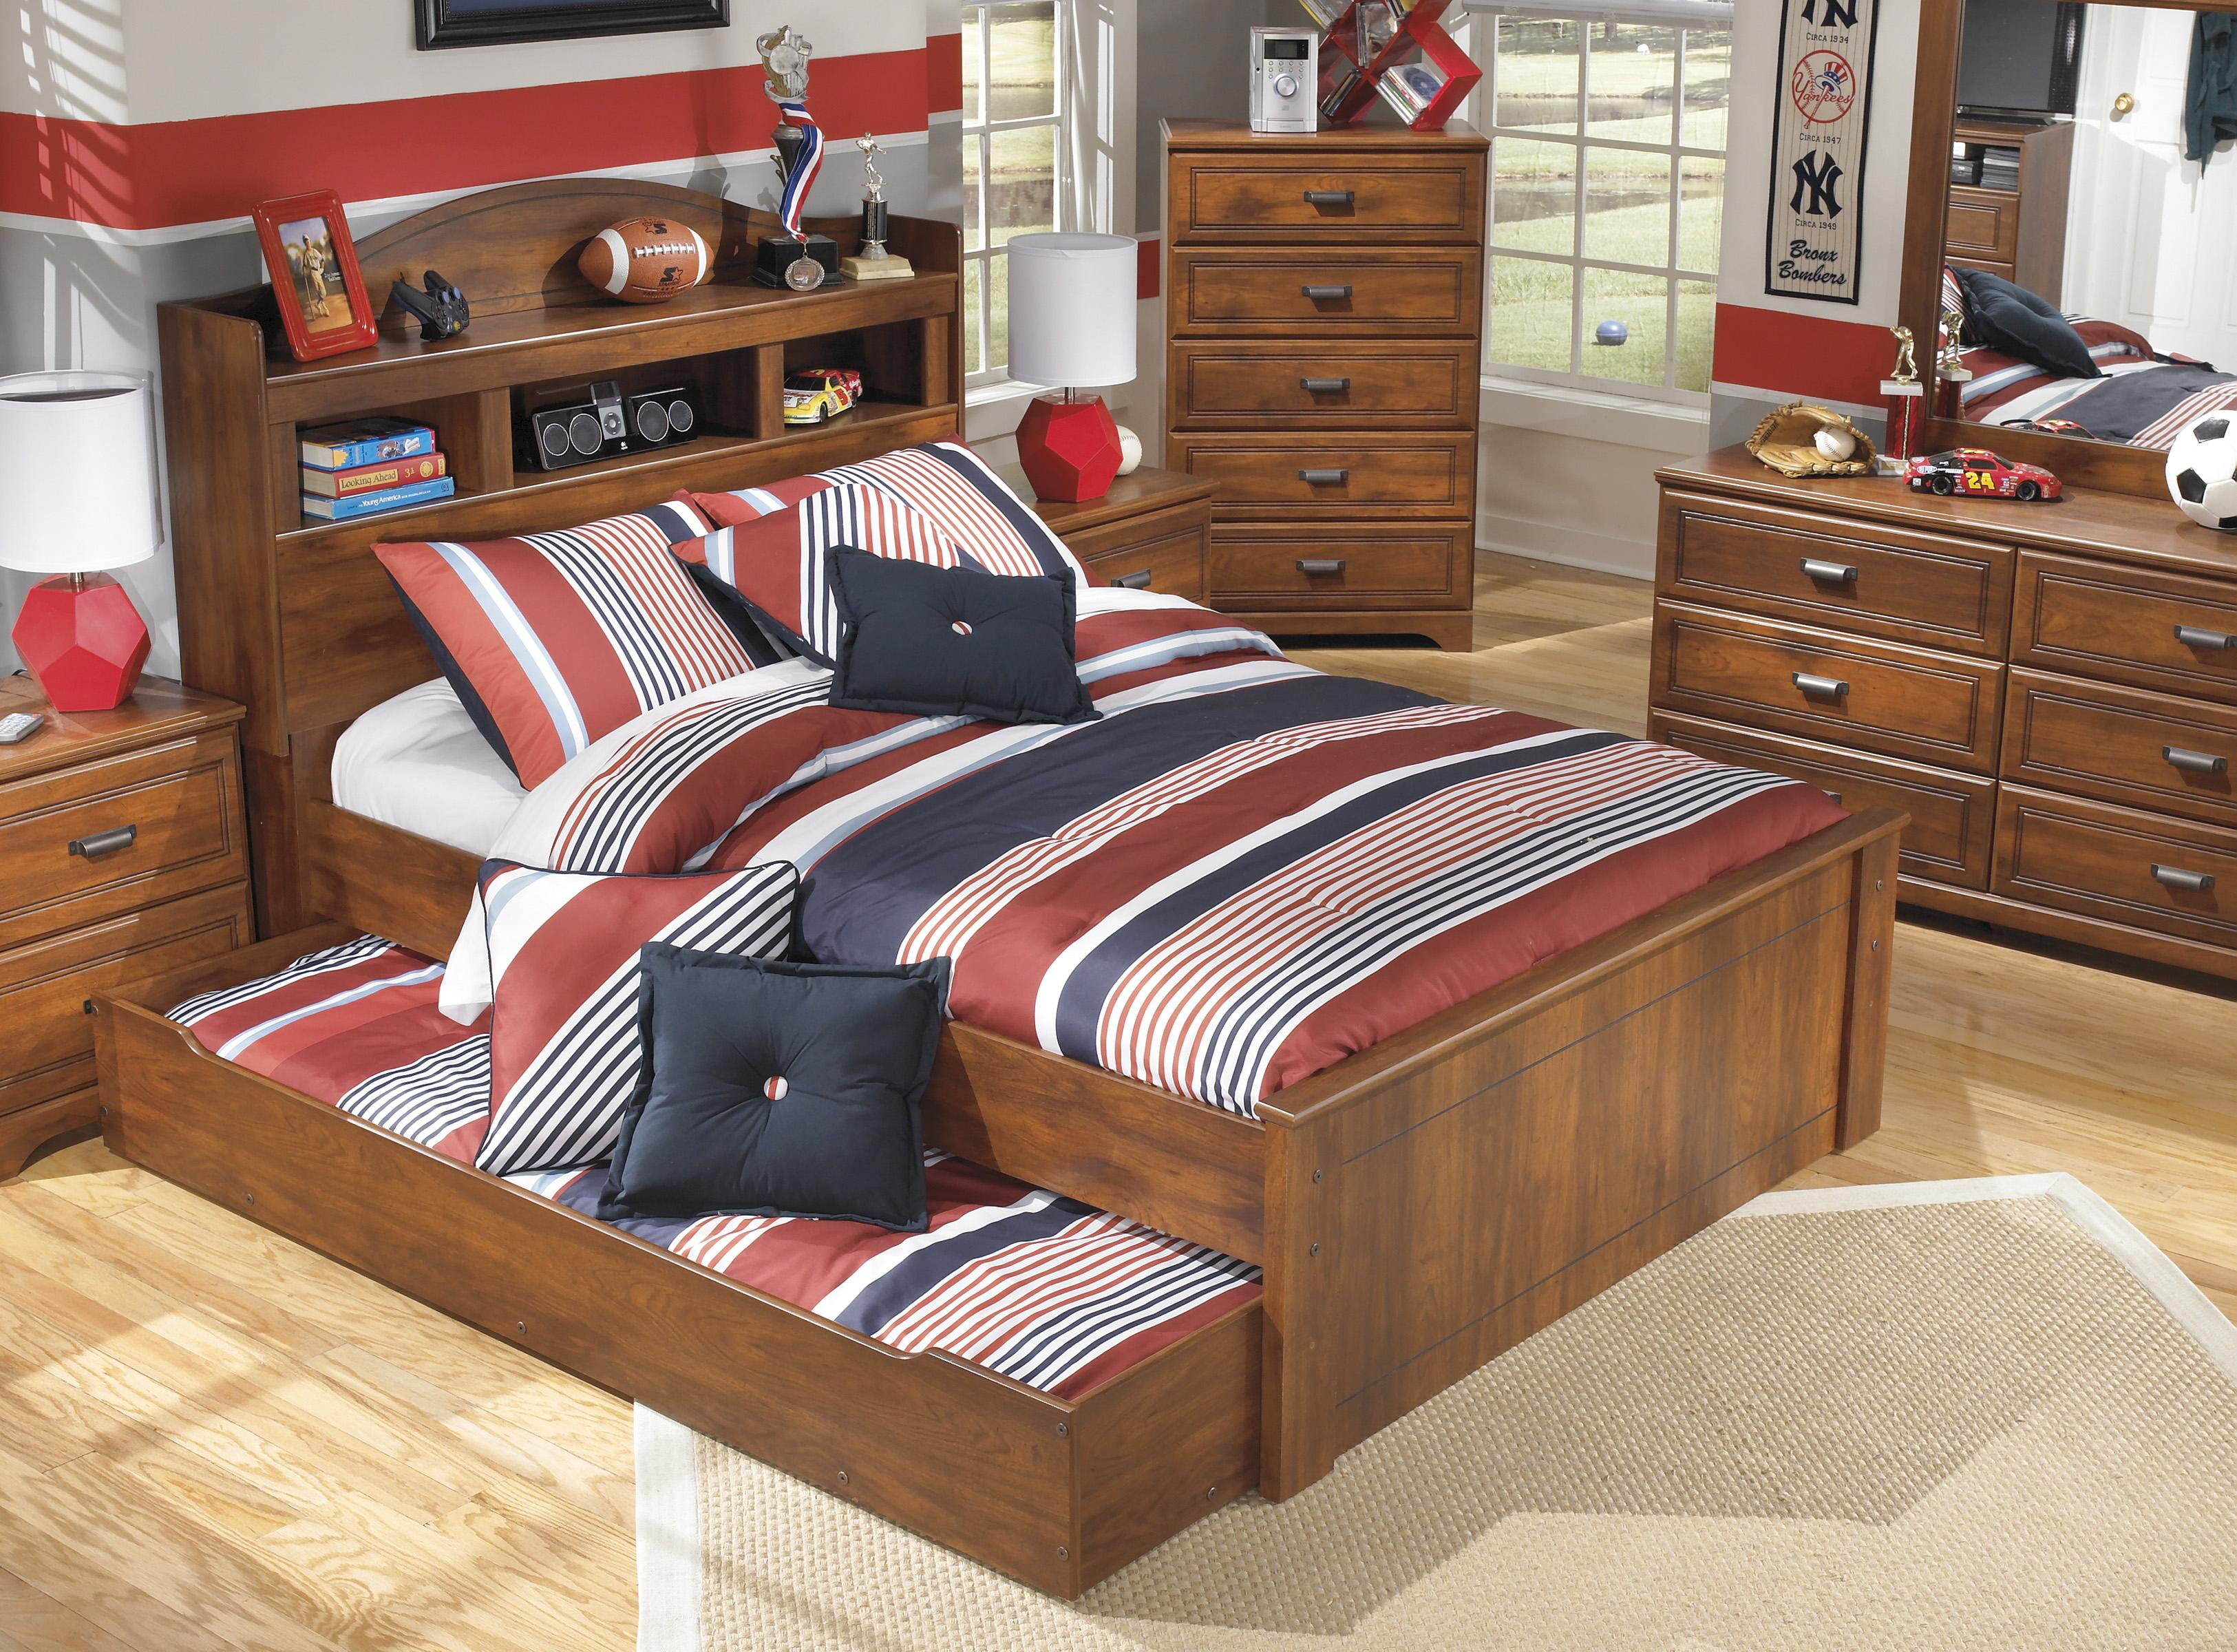 Signature design by ashley barchan full bookcase bed with trundle under bed storage unit Ashley home furniture bedroom set